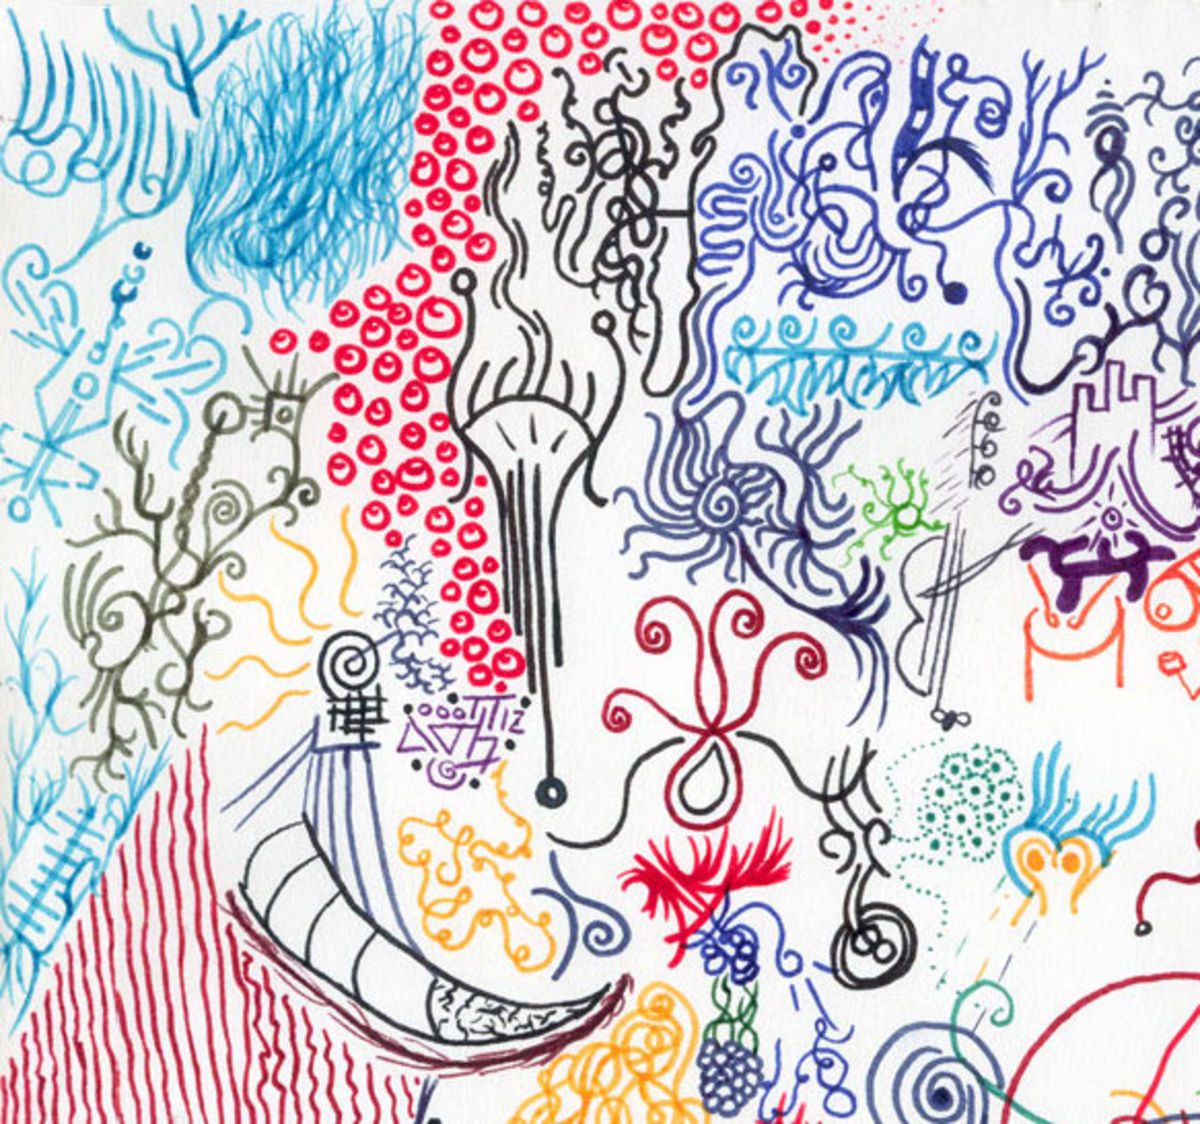 Test Draws On Doodles To Spot Signs Of >> Doodling Your Way To A More Mindful Life Psychology Today